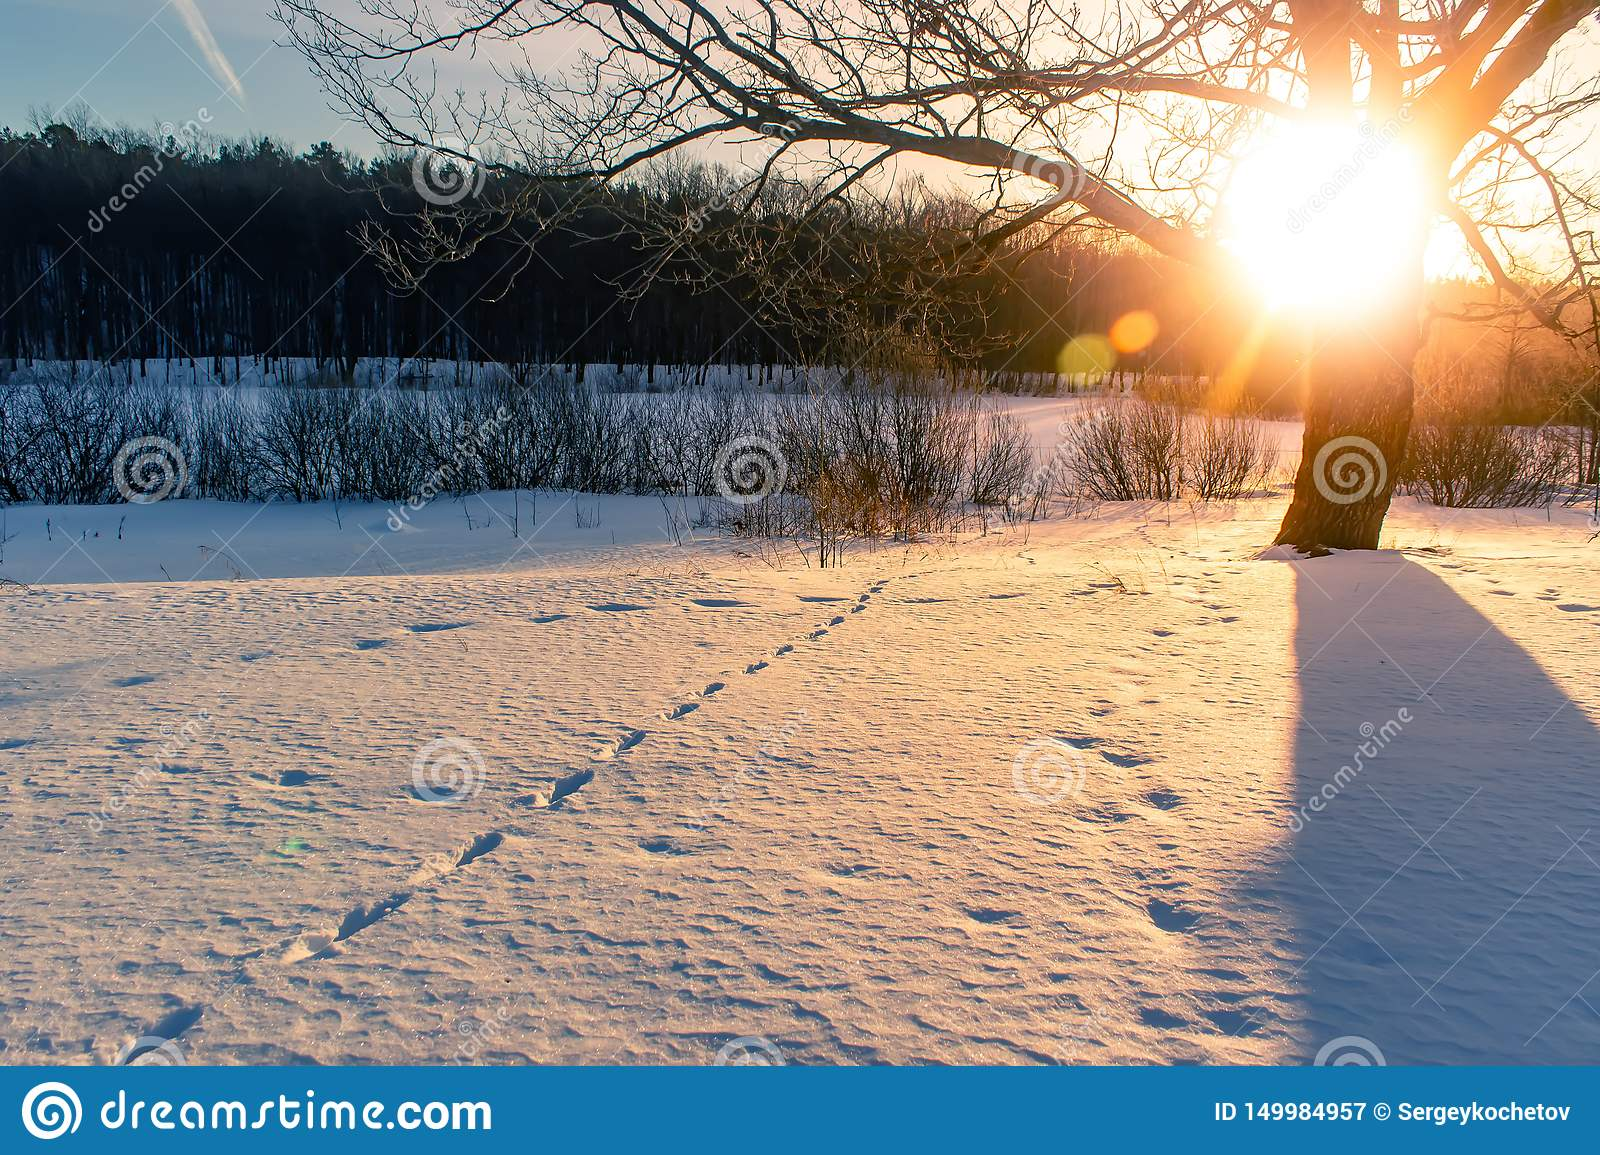 Sunset in a winter forest. Traces of animals in the snow